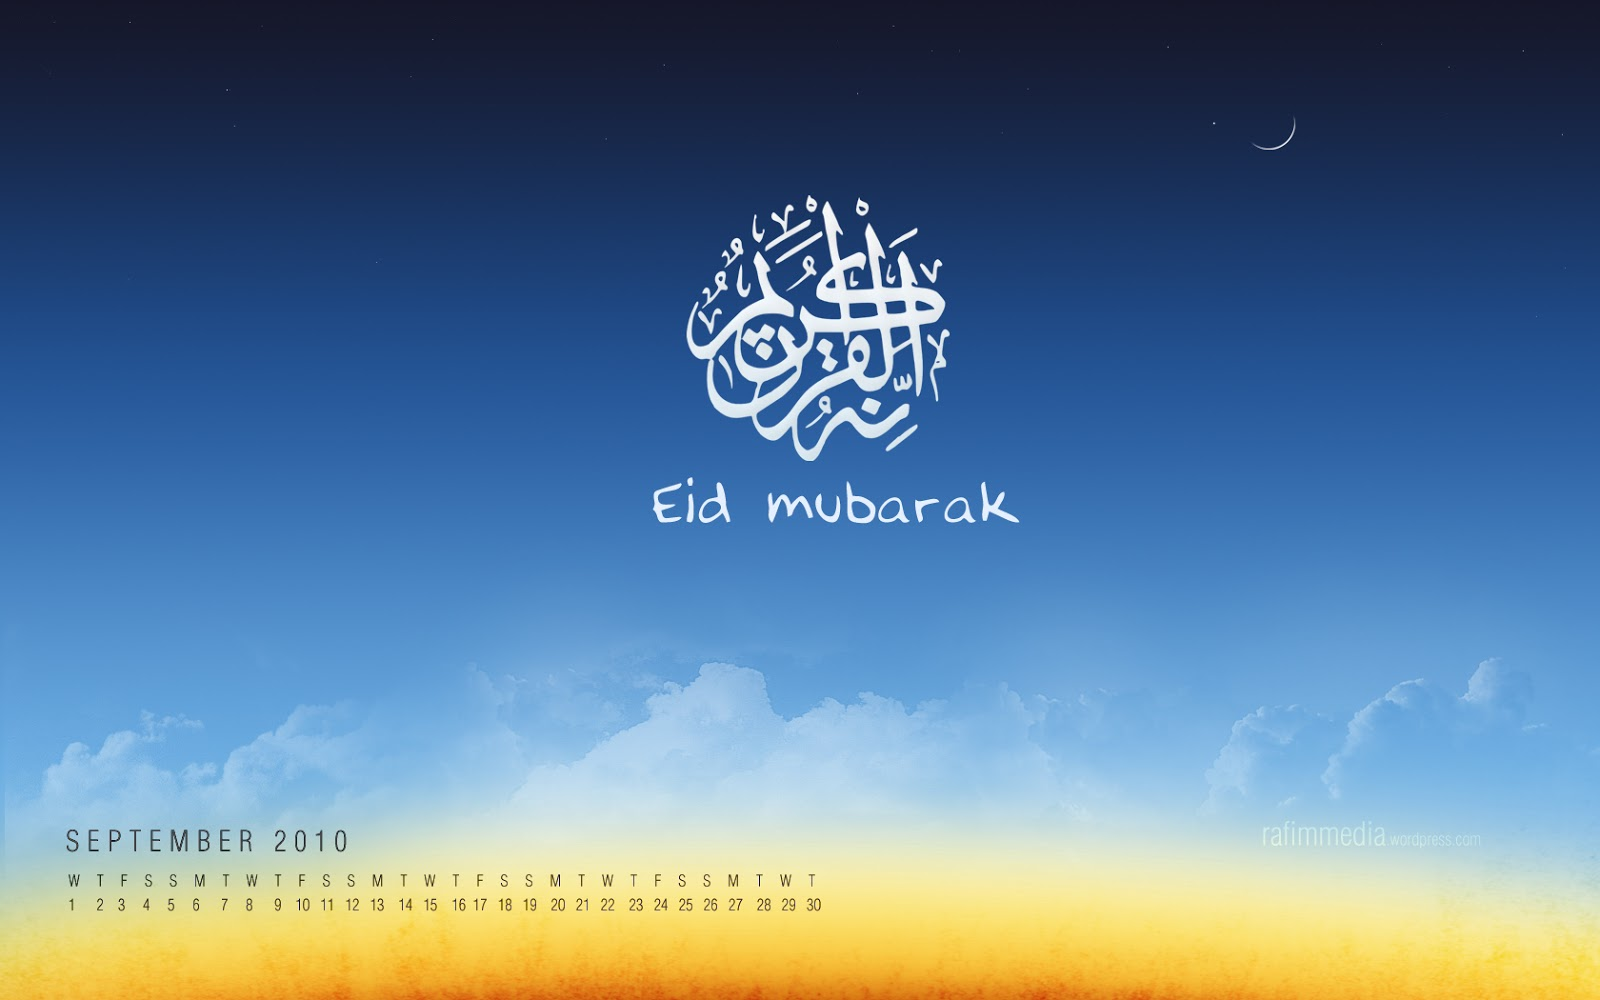 Eid greetings malayalam images greeting card examples eid mubarak pictures and pic and beautiful eidulfitrgreetingshappyeidmubarakhddesktopwallpapersgreetingcardspicturesfacebookfbtimelinecoversbackgrounds kristyandbryce Image collections